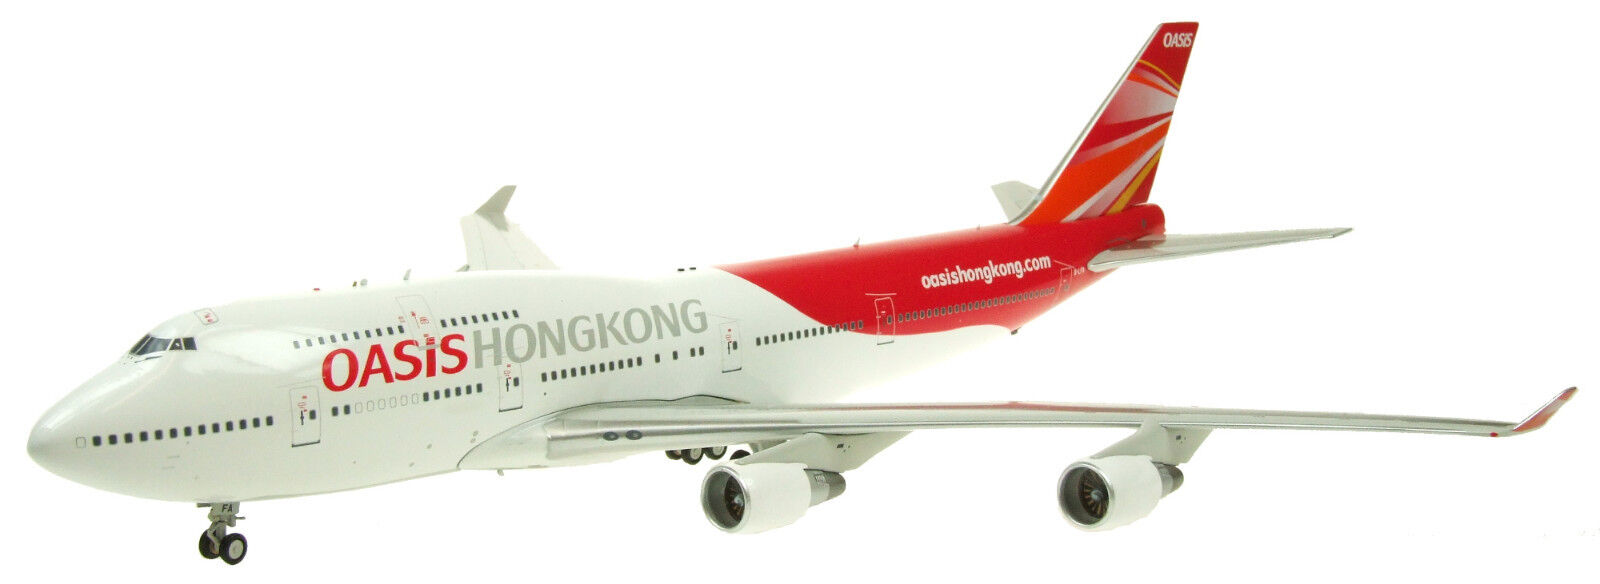 JFOX JF7474023 1 200 747-412 OASIS HONG KONG AIRLINES PW ENGINE VERSION W STAND